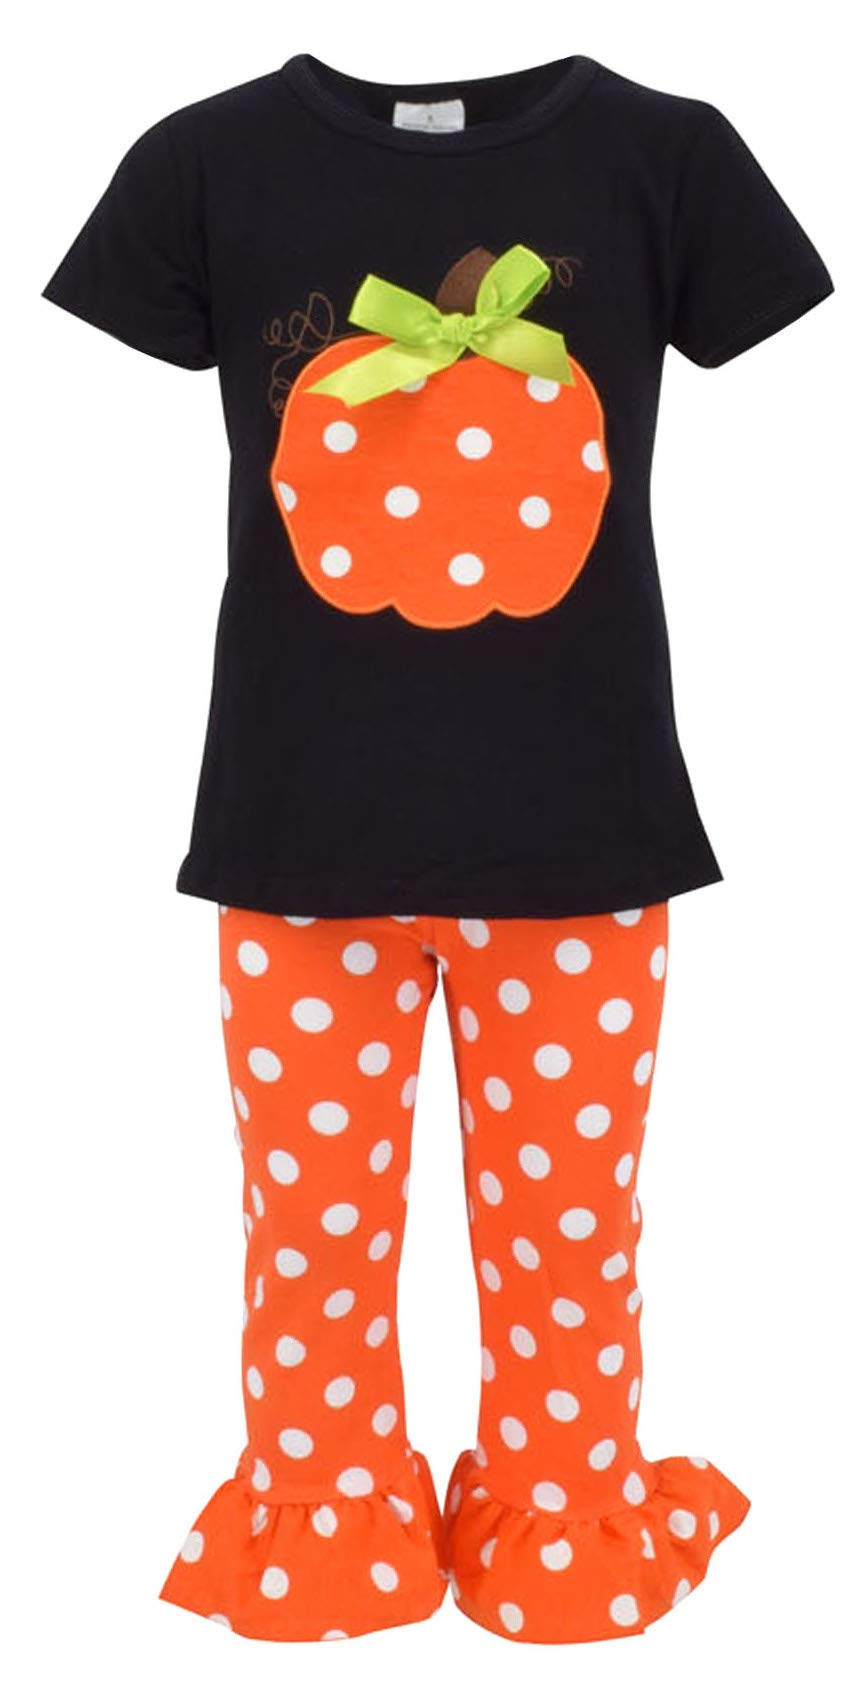 Unique Baby Girls Fall Fashion Halloween Polka Dot Pumpkin Outfit (3t)